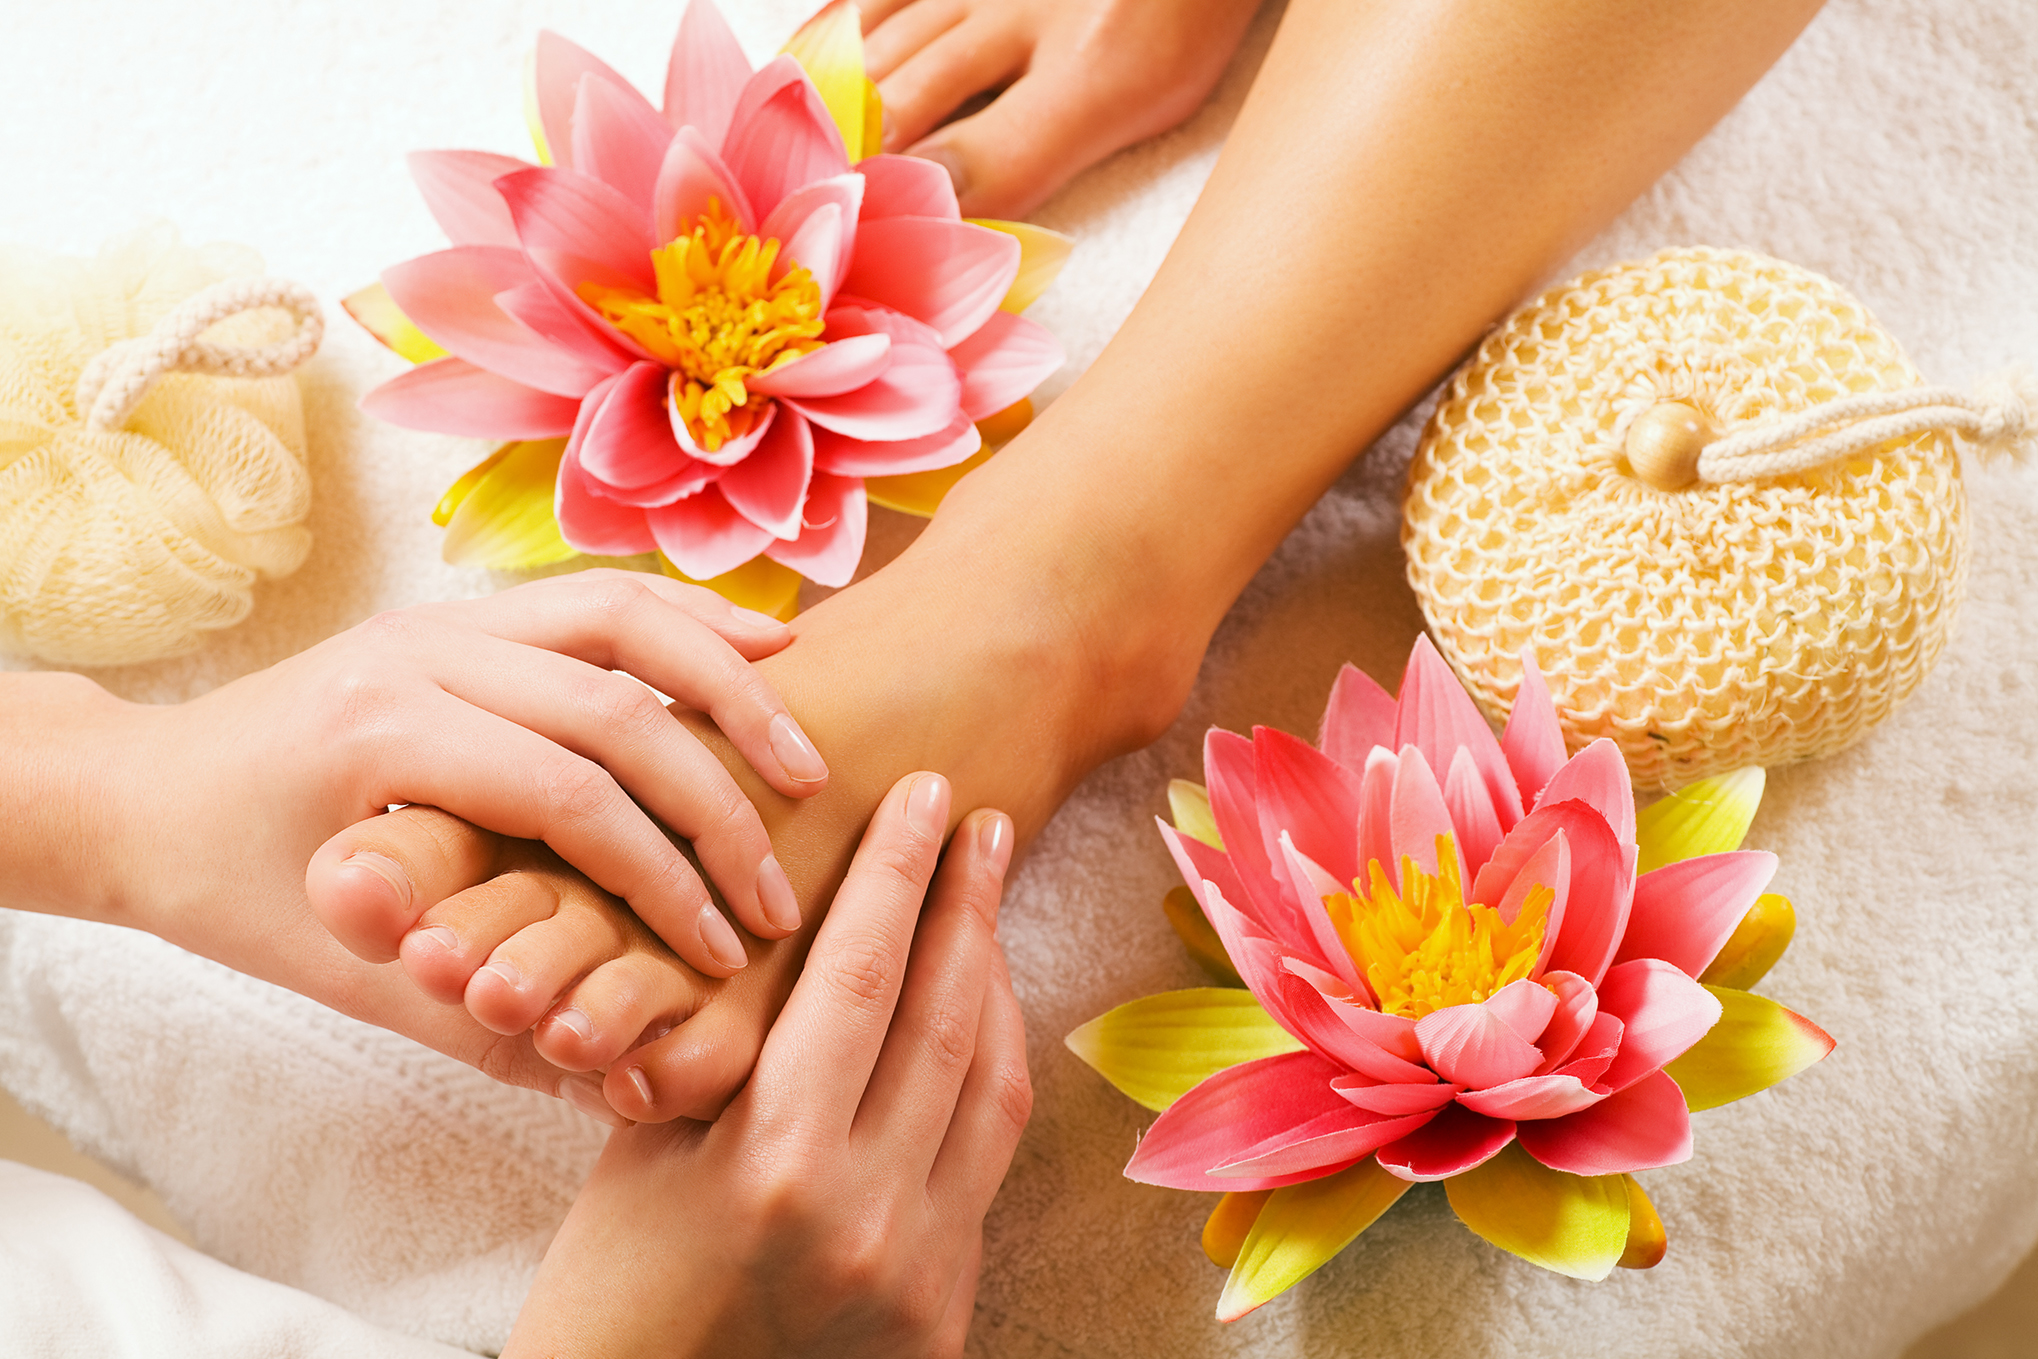 Foot massage by reflexologist